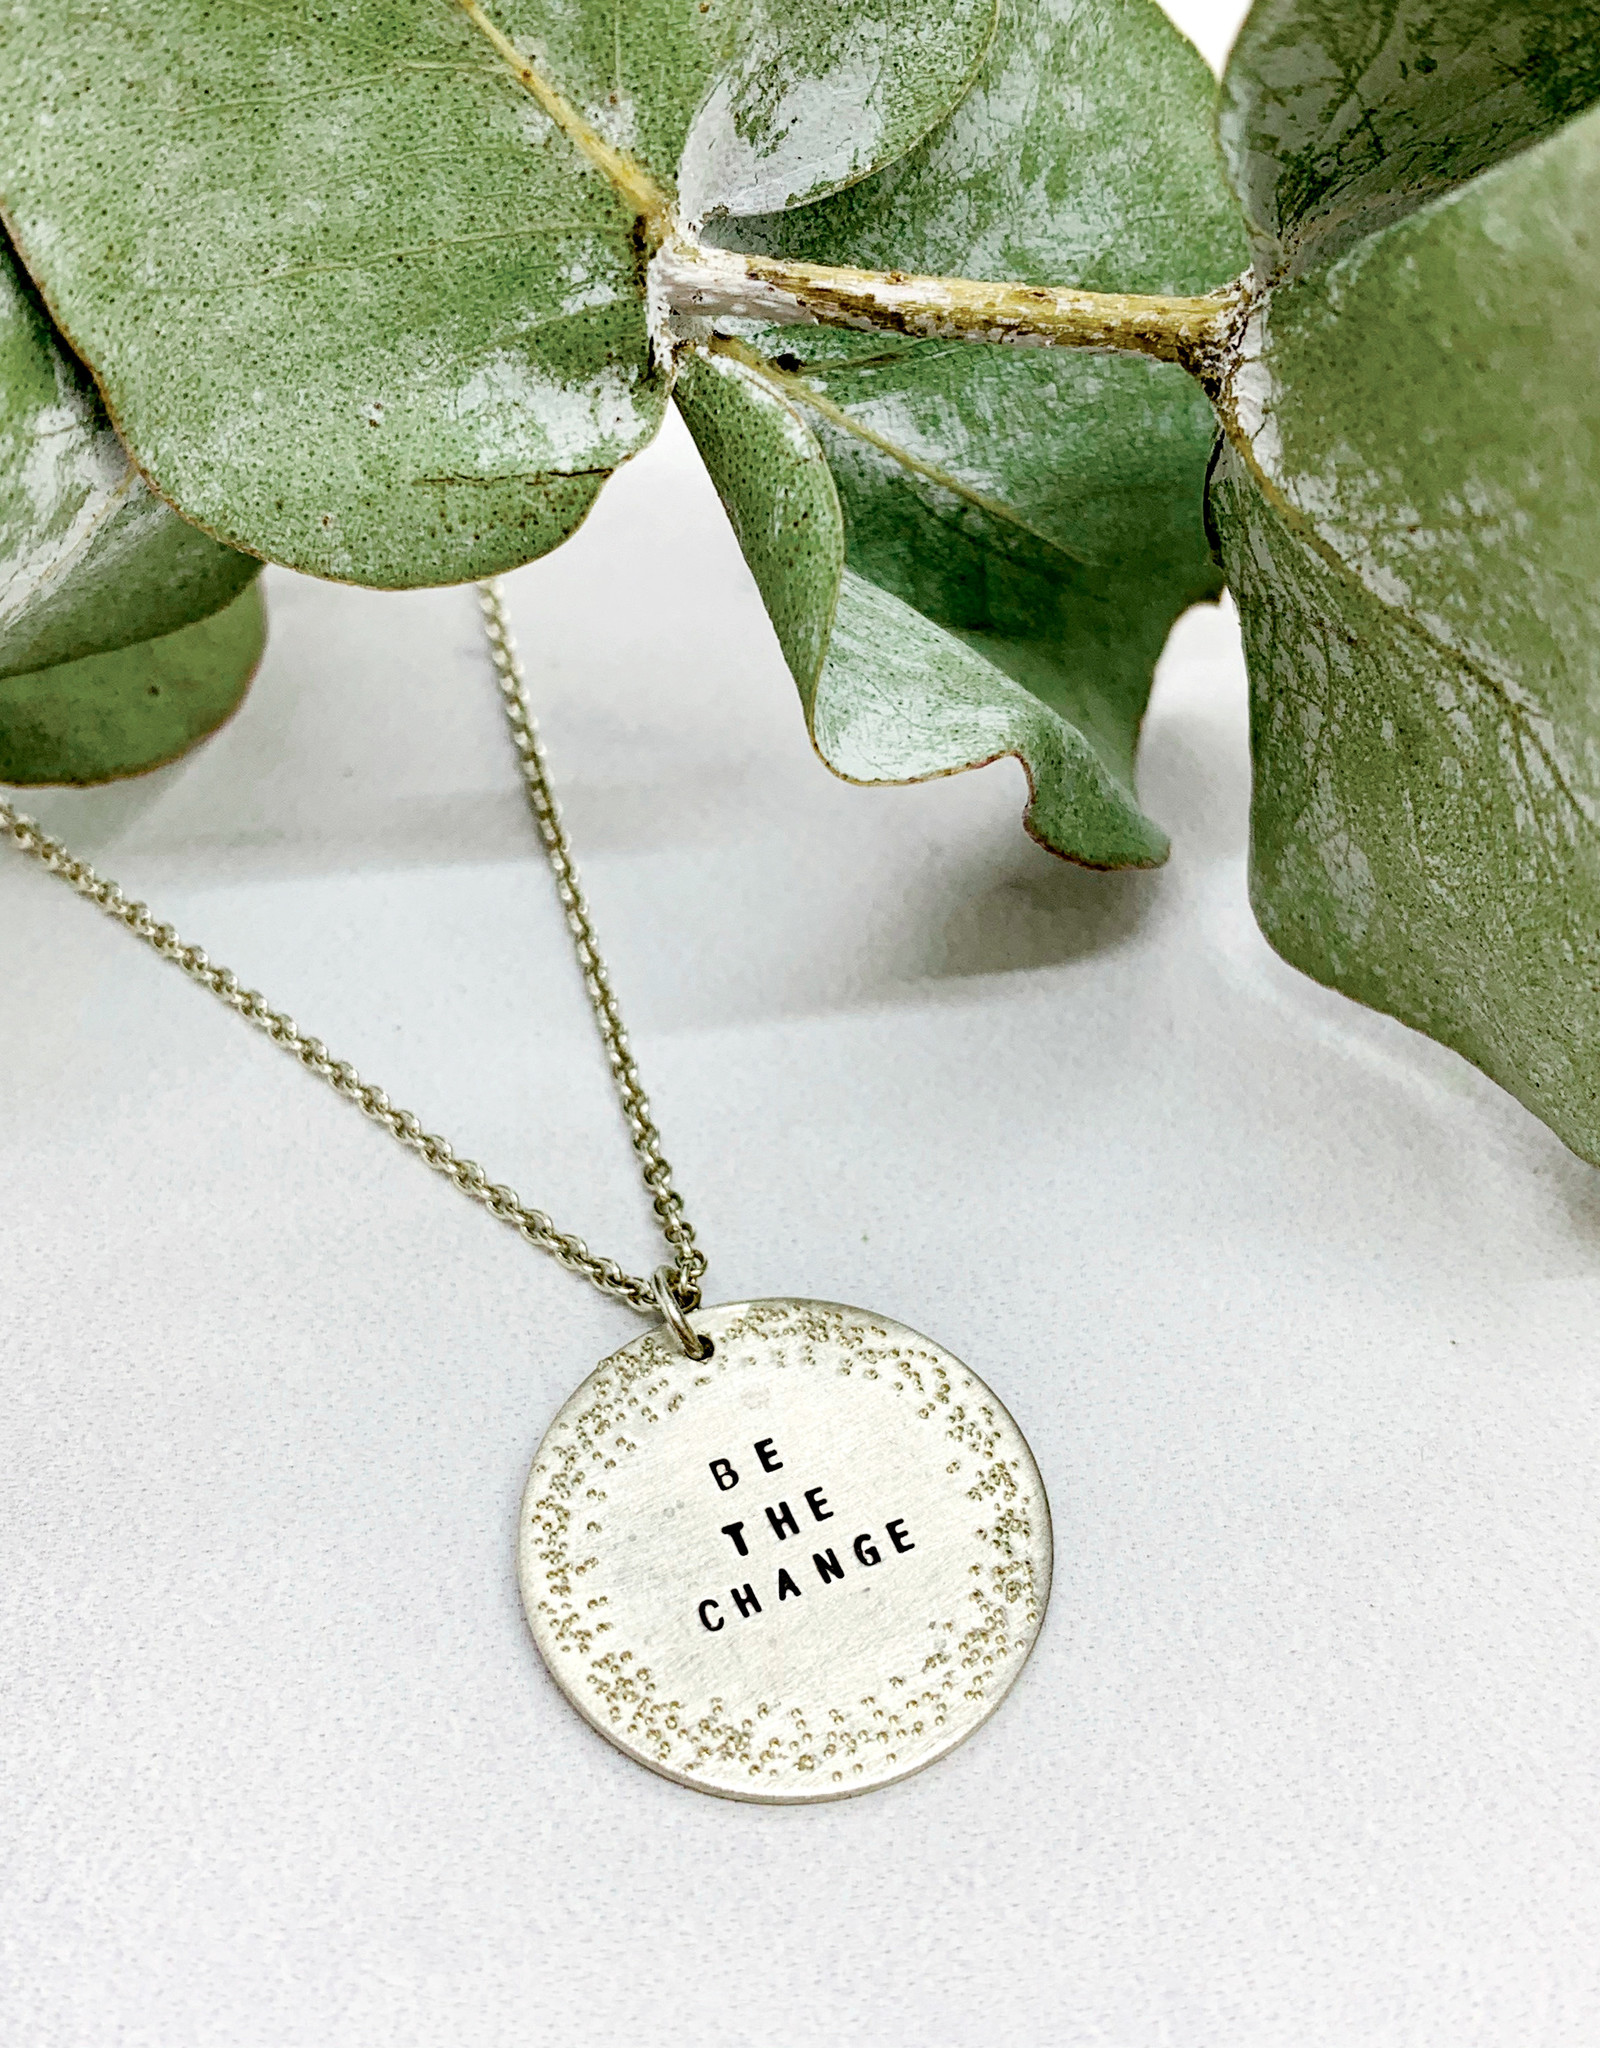 """Christina Kober Handmade Silver """"BE THE CHANGE"""" Diamond Dusted Small Coin Necklace, 16/18"""""""